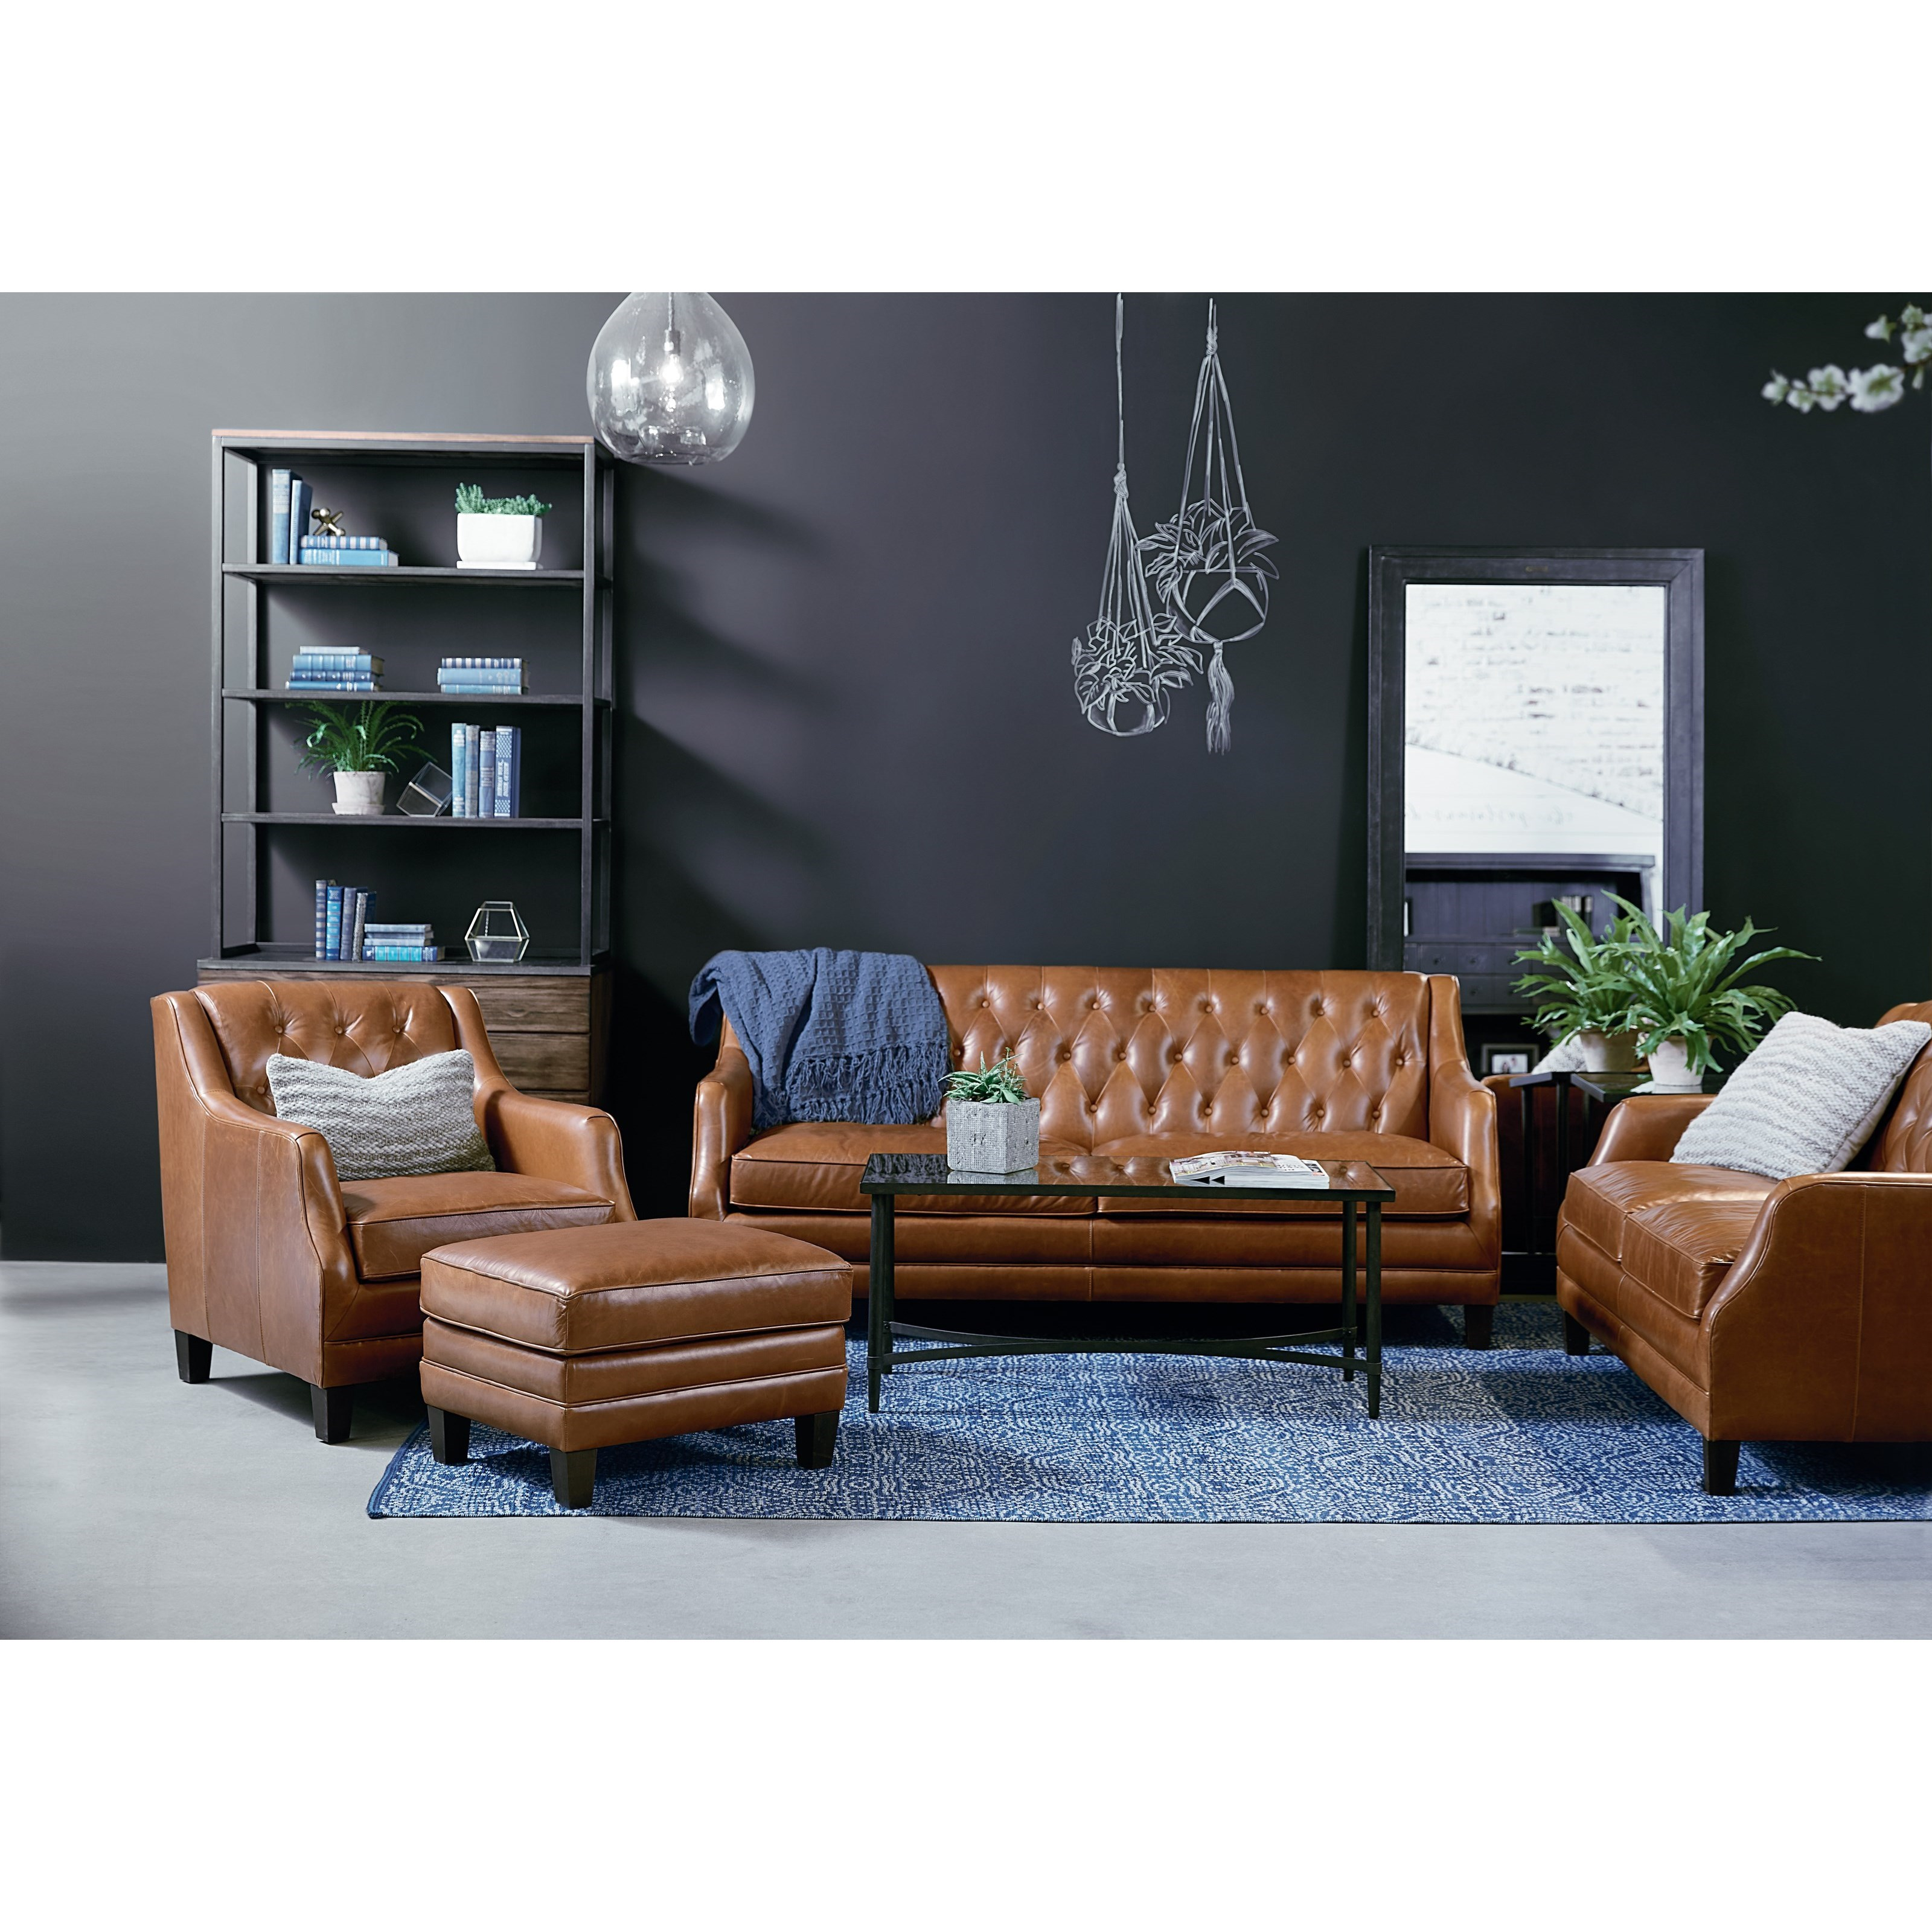 Magnolia Home By Joanna Gaines Gentry Leather Sofa With